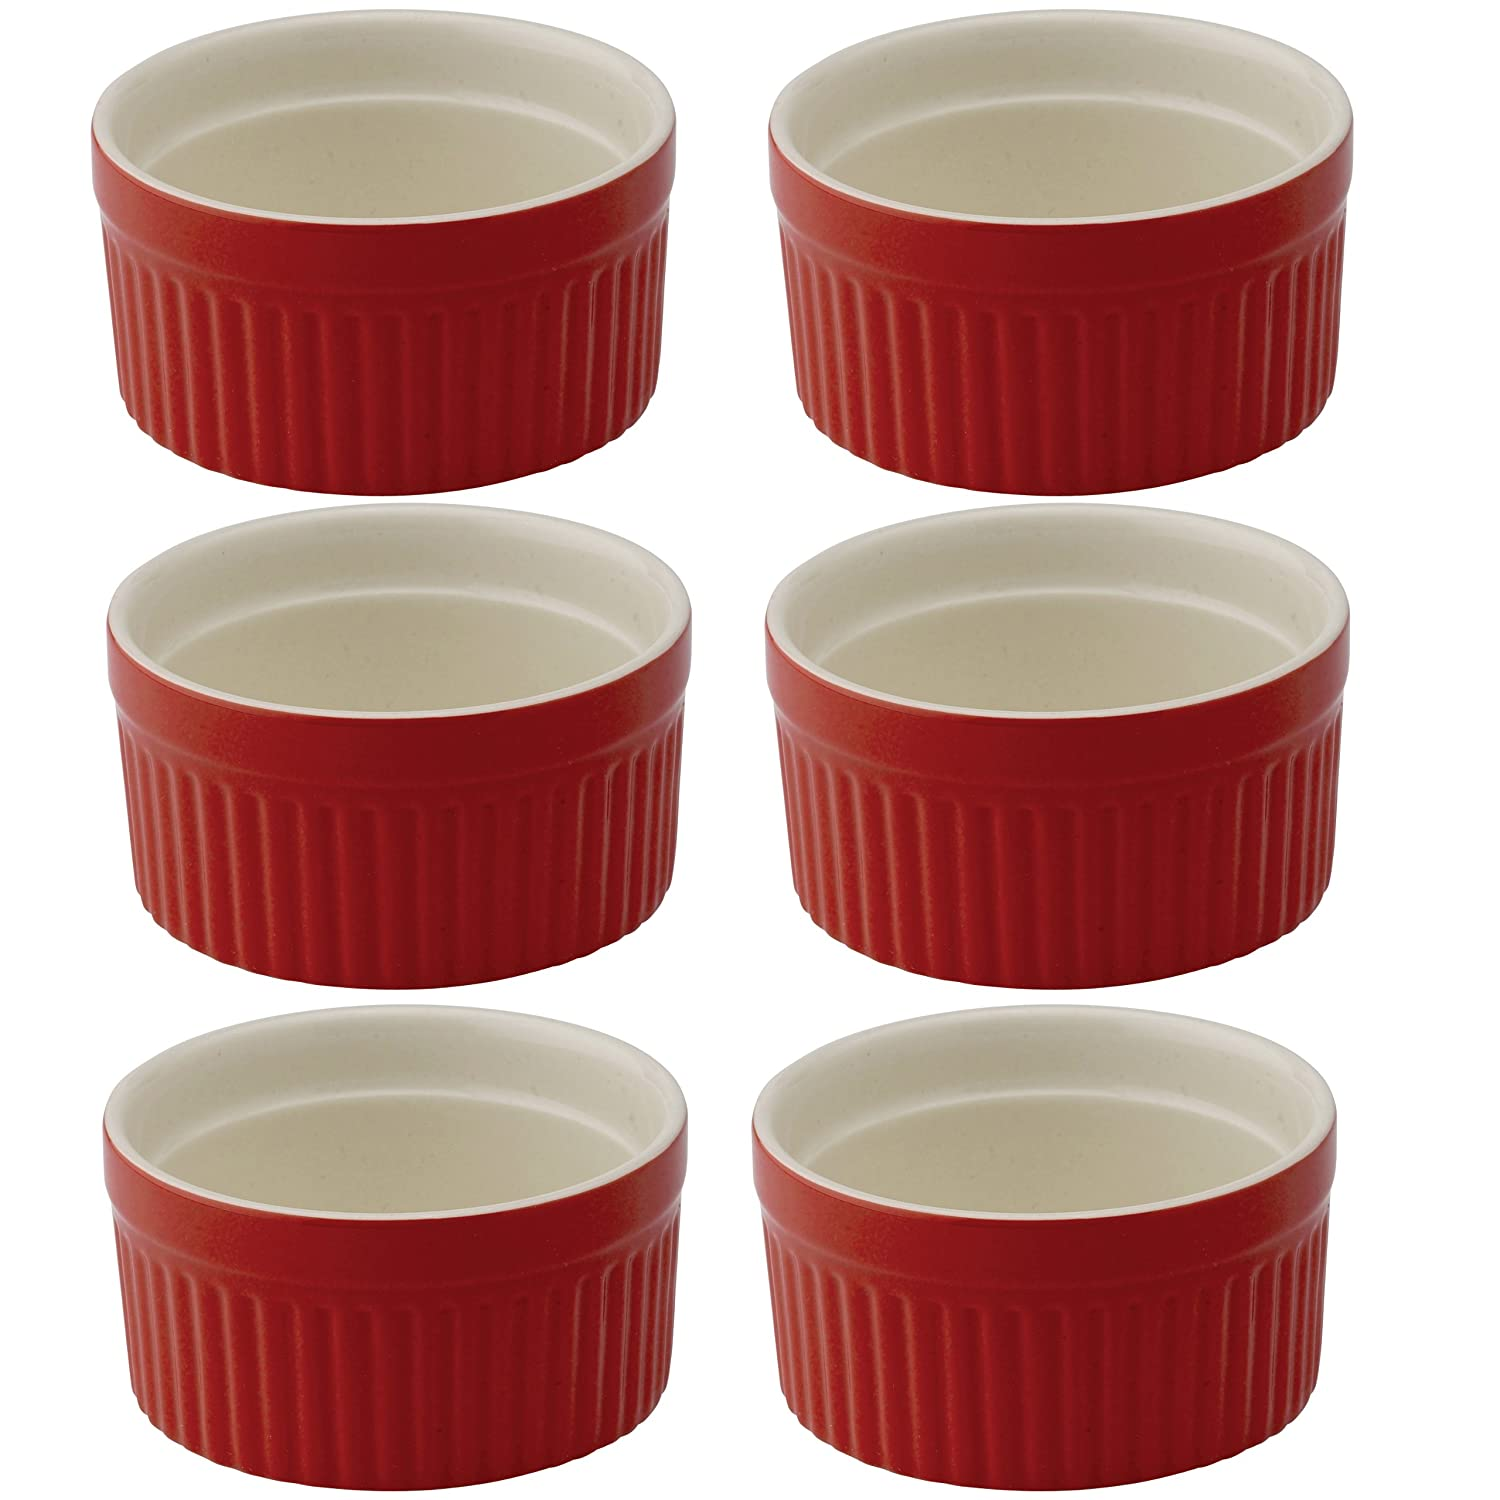 HIC Ceramic Ramekin, Set of 6, Rose HIC Brands that Cook 98002RS-6